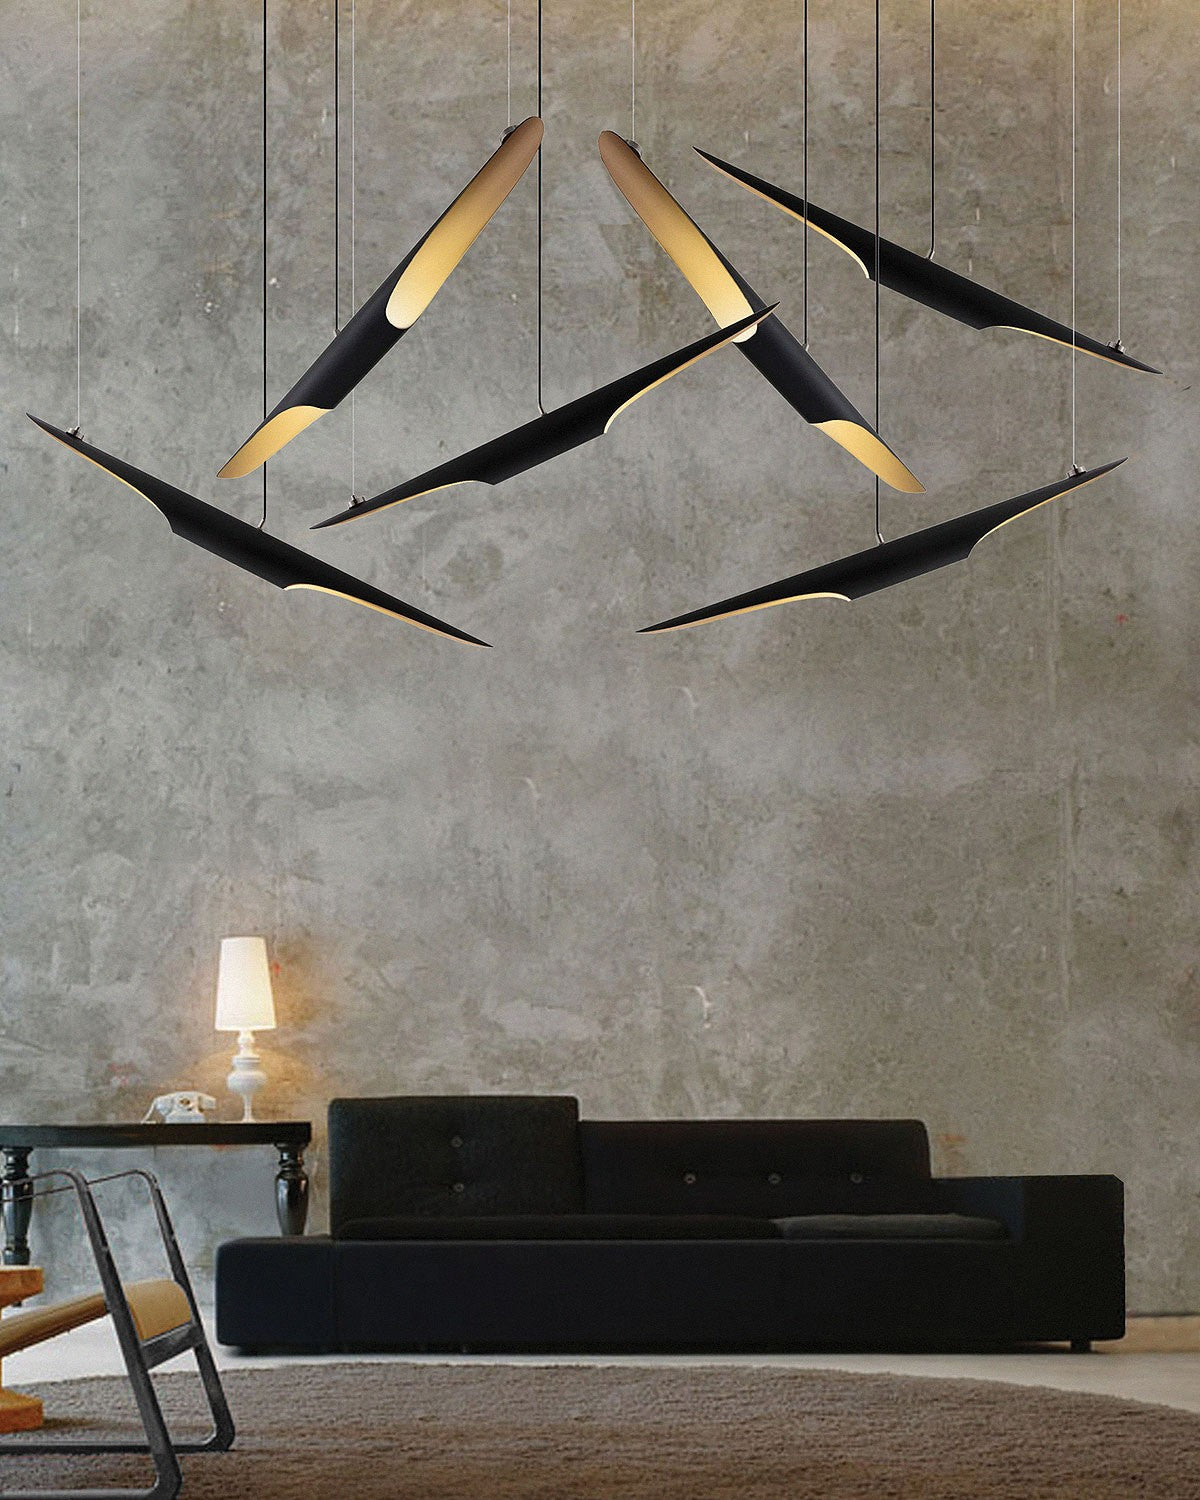 Awesome ideas for Ceiling Lighting